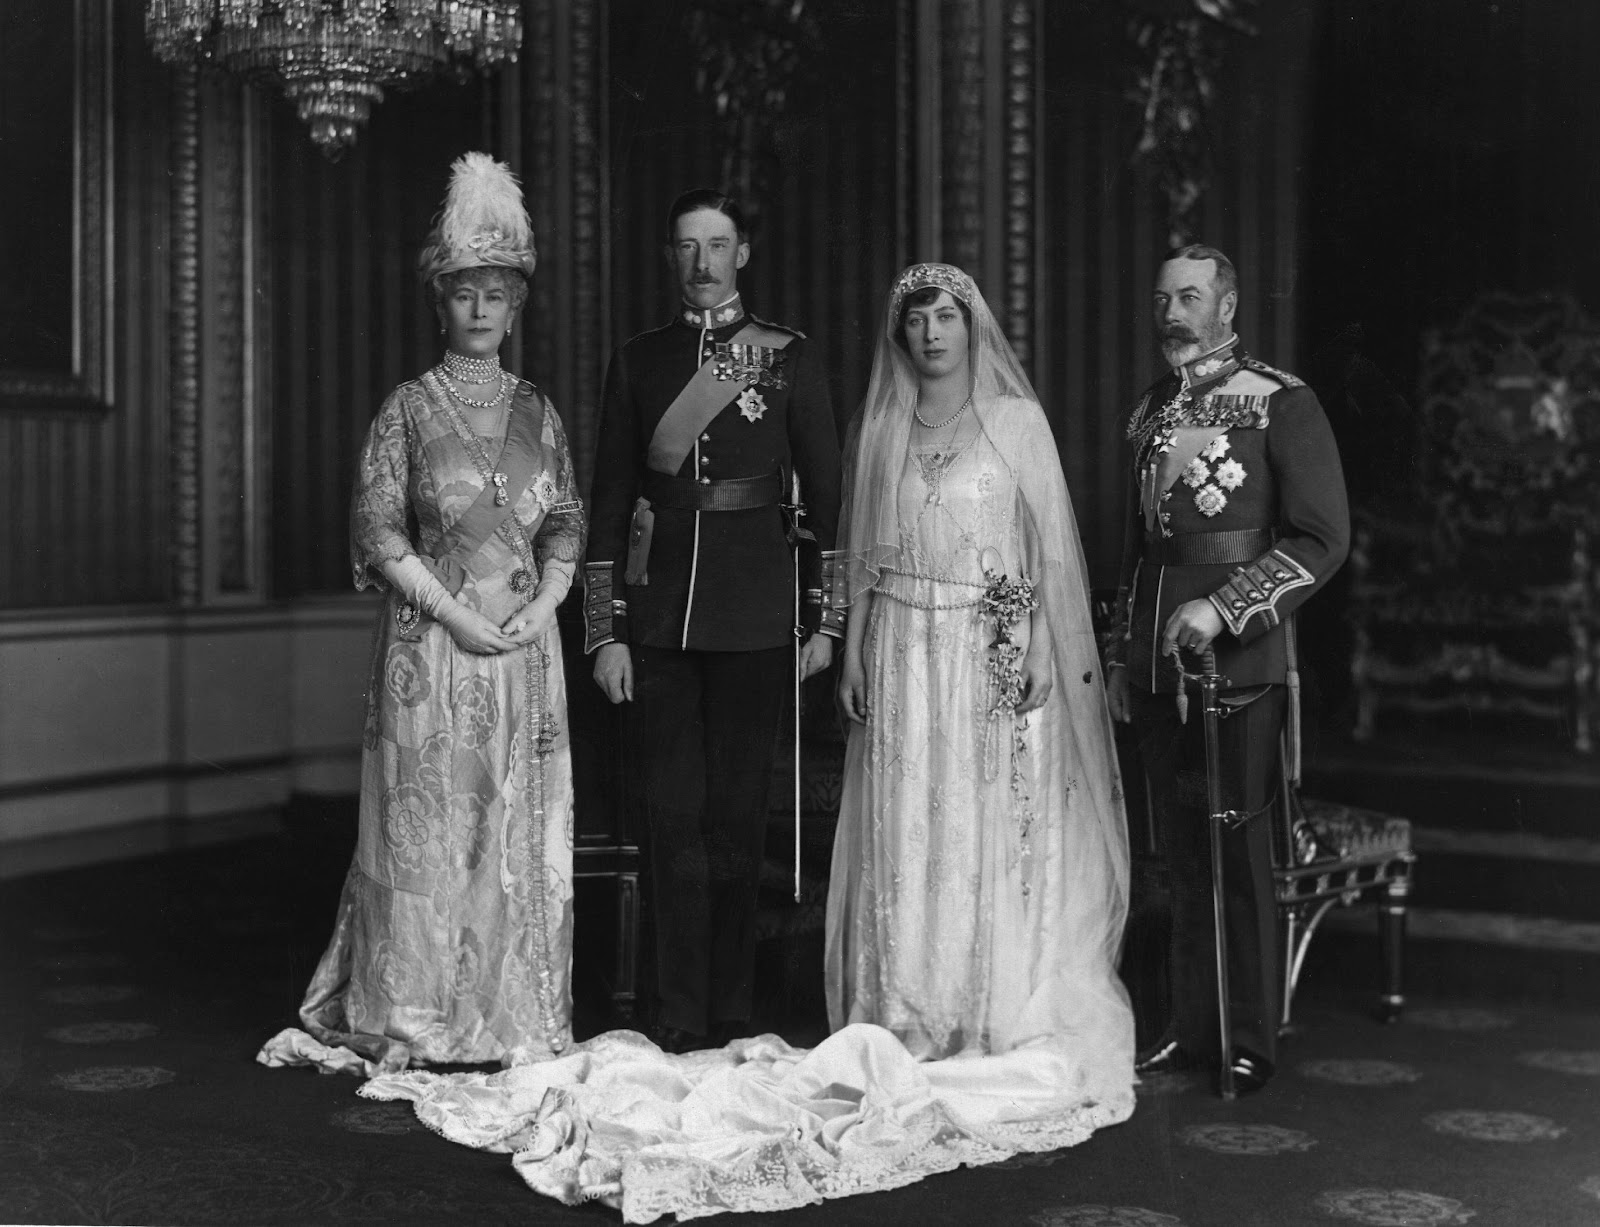 Princess victoria mary of teck queen consort mary of the united